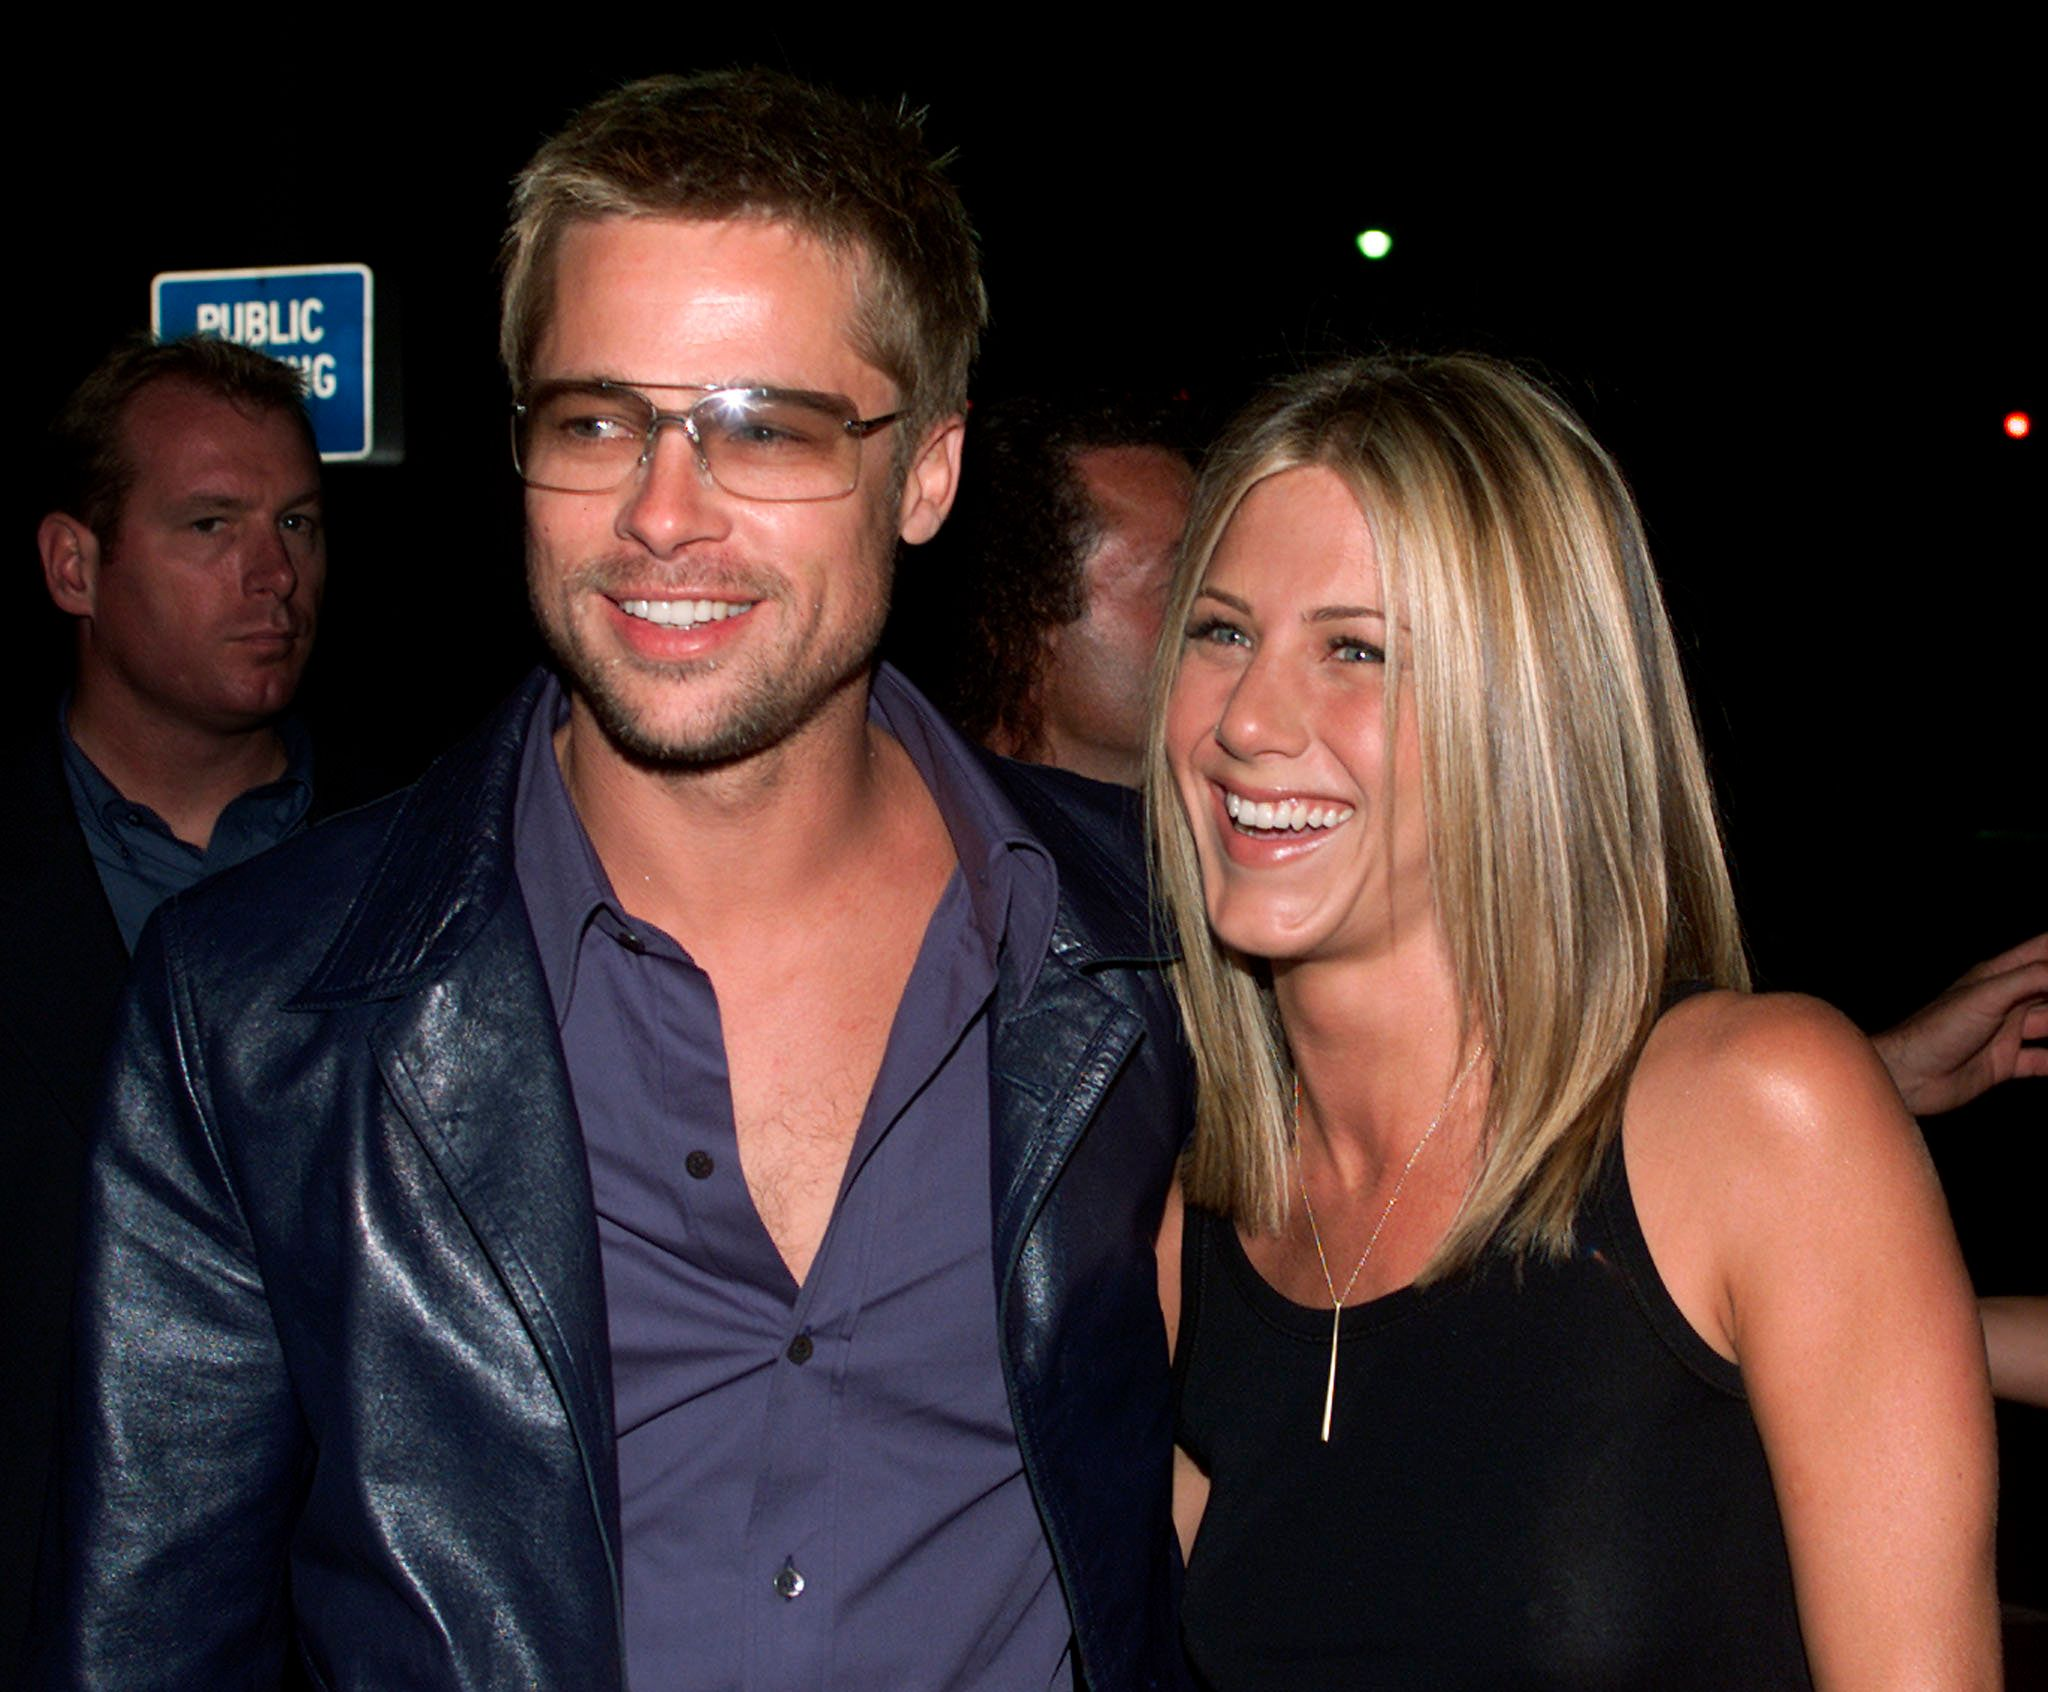 """Actors Brad Pitt and Jennifer Aniston have resolved their lawsuit against a jeweler over claims she made the Hollywood couple """"unwilling shills"""" for wedding rings, representatives for both sides said January 11, 2002. Aniston and Pitt are seen at the premiere of 'Rock Star' in Los Angeles on September 4, 2001. REUTERS/Fred Prouser  XX"""